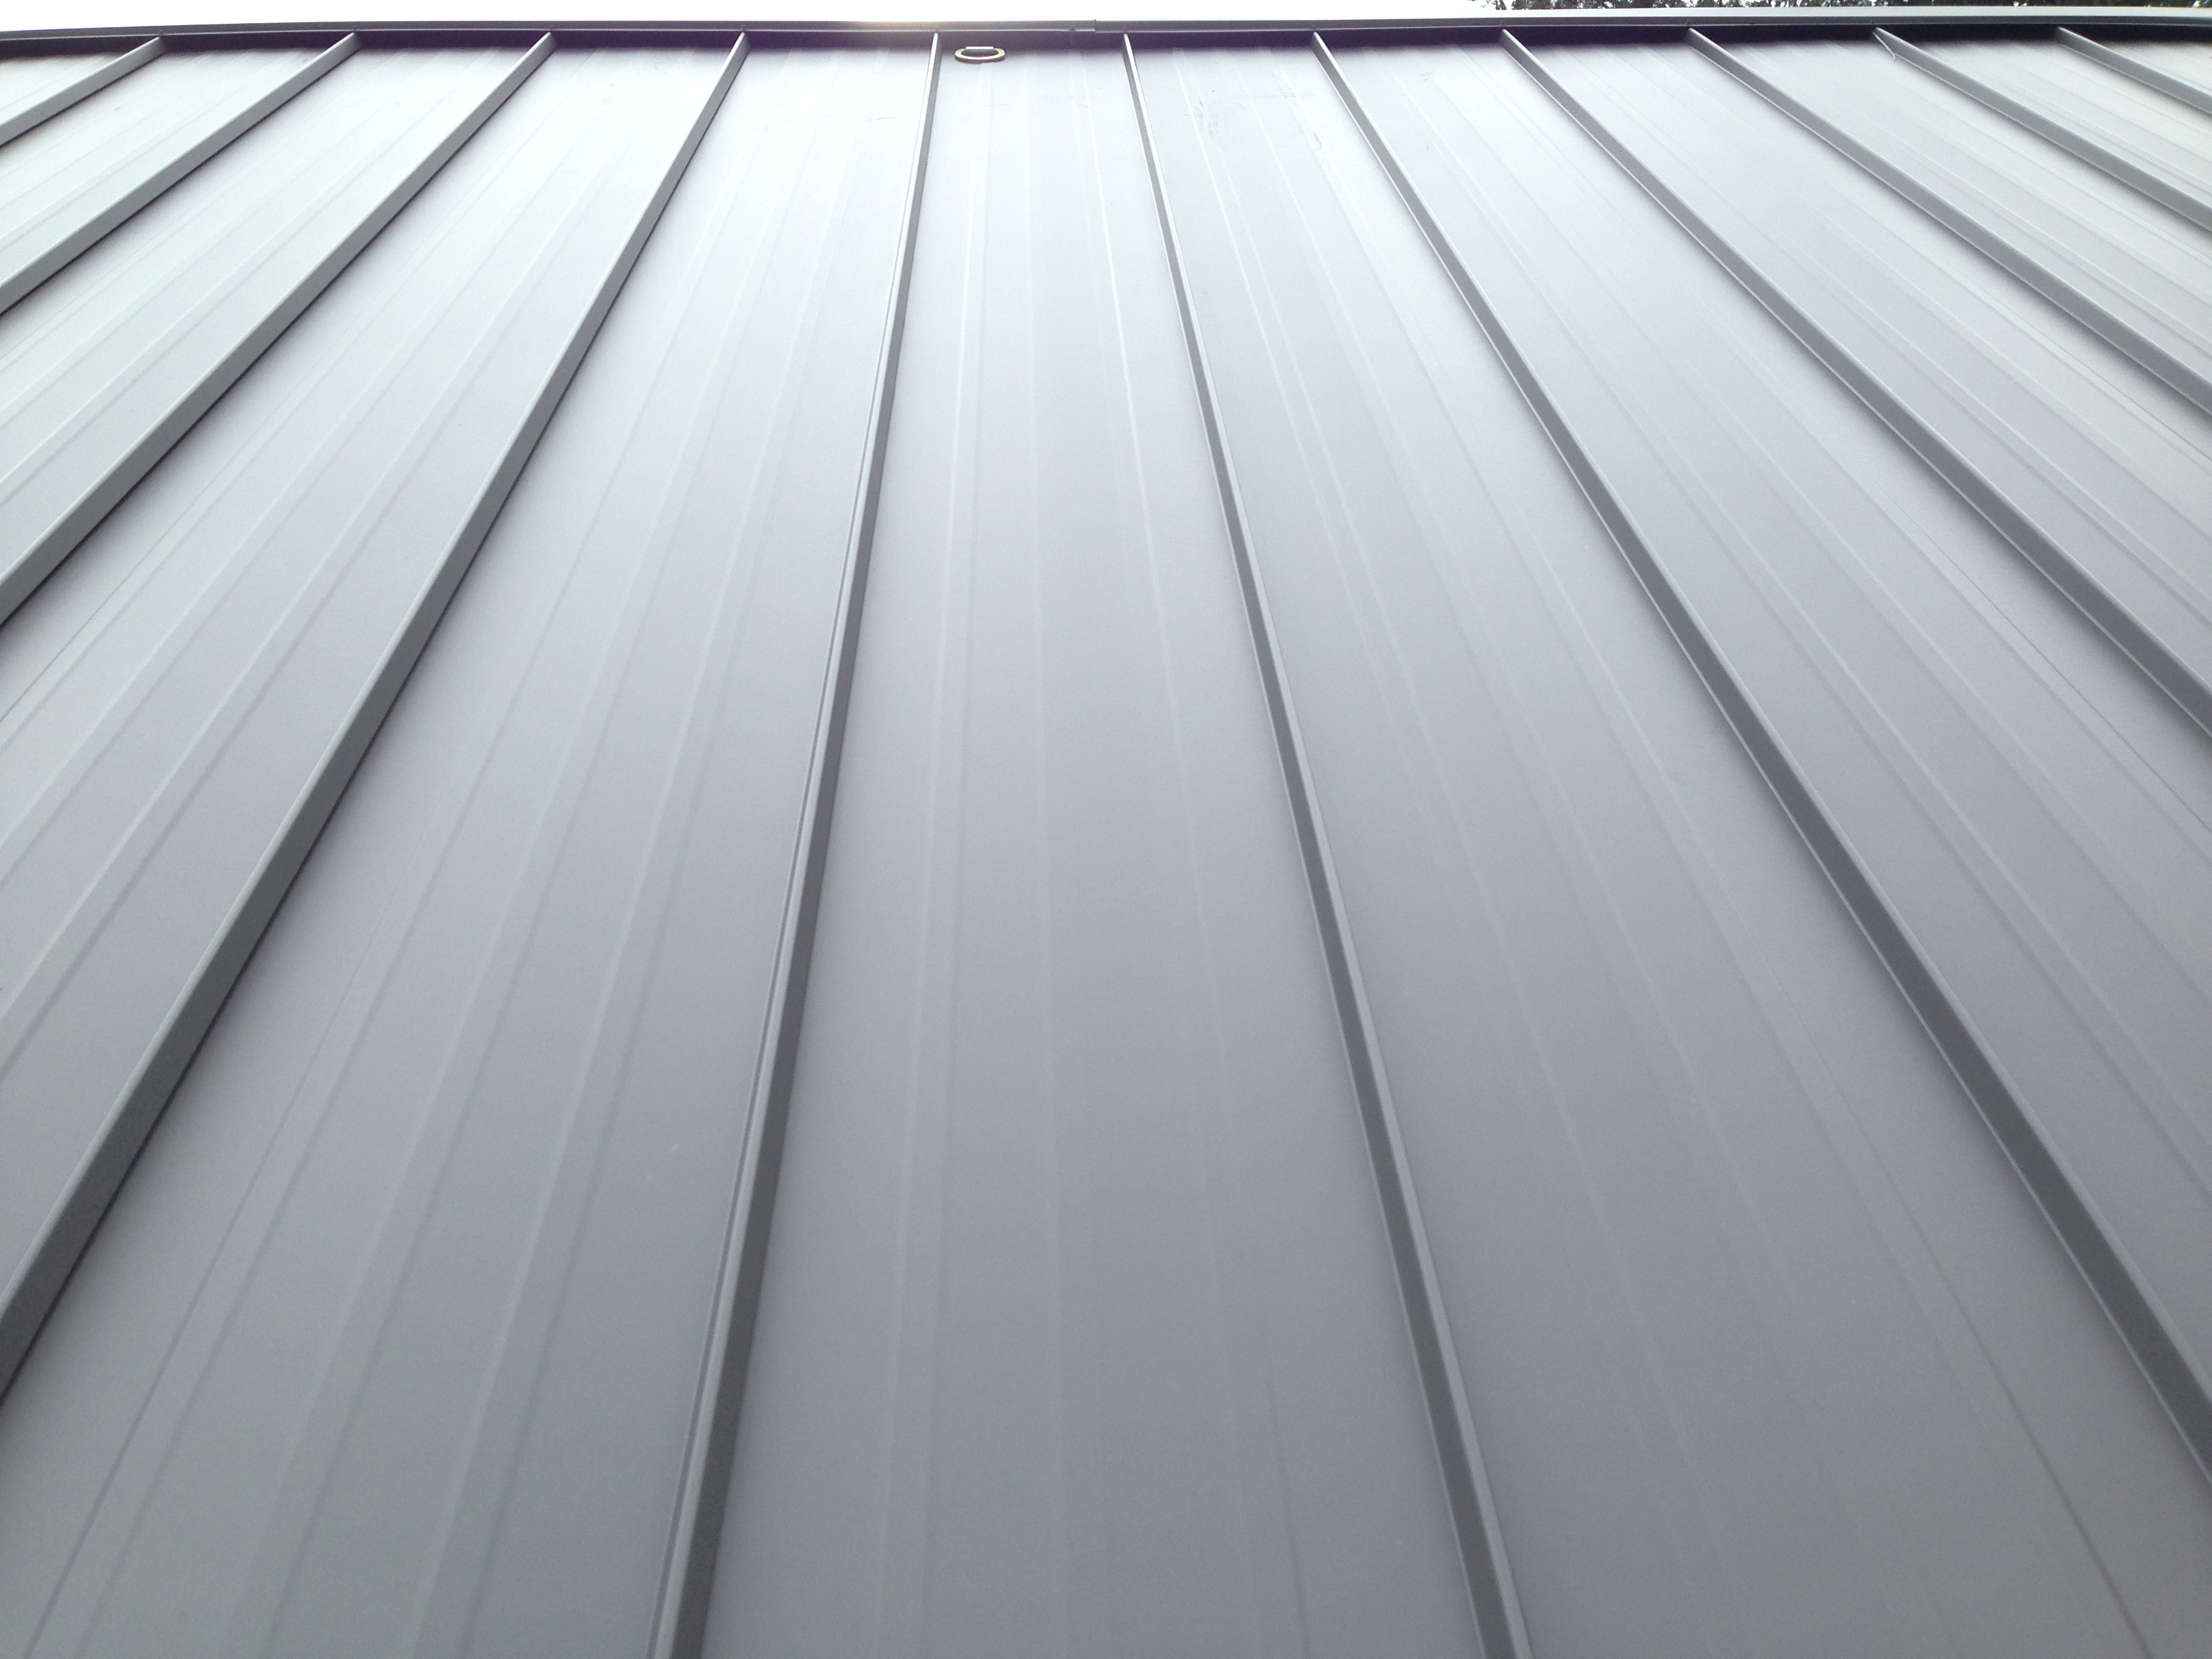 Metal Roofs Vs Rubber Roofs Understanding The Difference